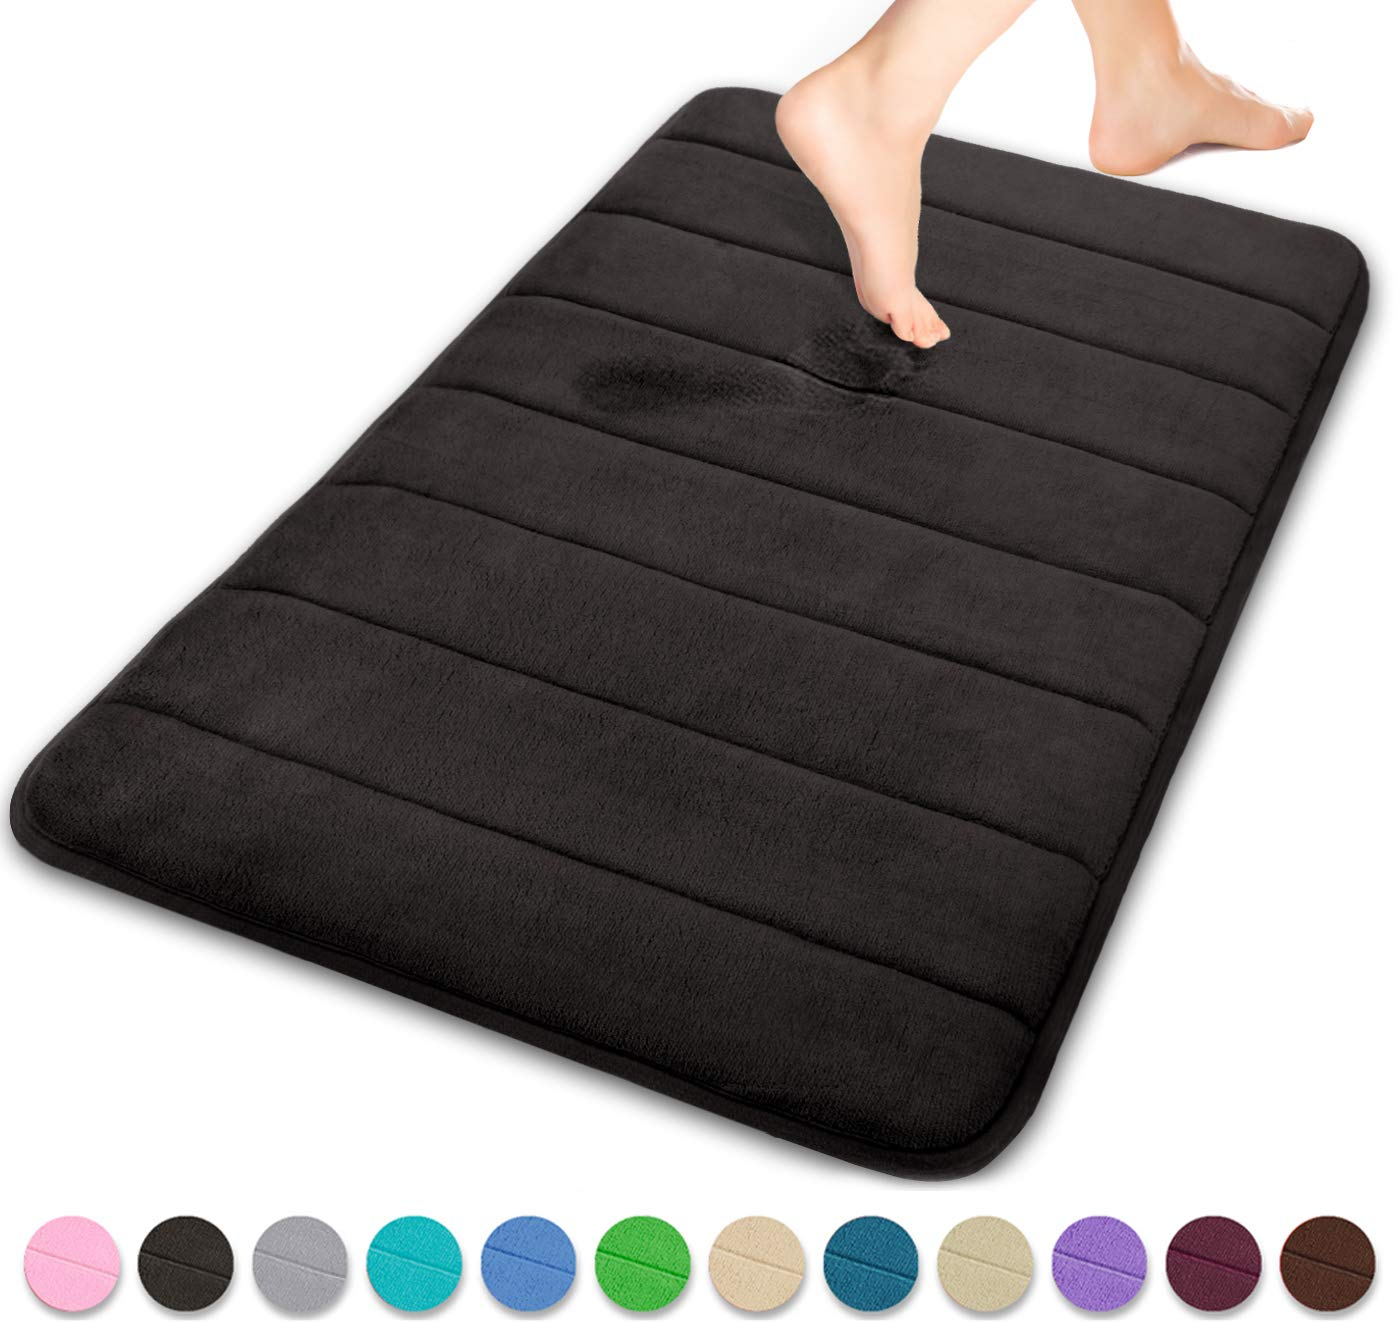 Yimobra Memory Foam Bath Mat Large Size 31.5 by 19.8 Inches, Soft and Comfortable, Super Water Absorption, Non-Slip, Thick, Machine Wash, Easier to Dry Bathroom Floor Rug, Black